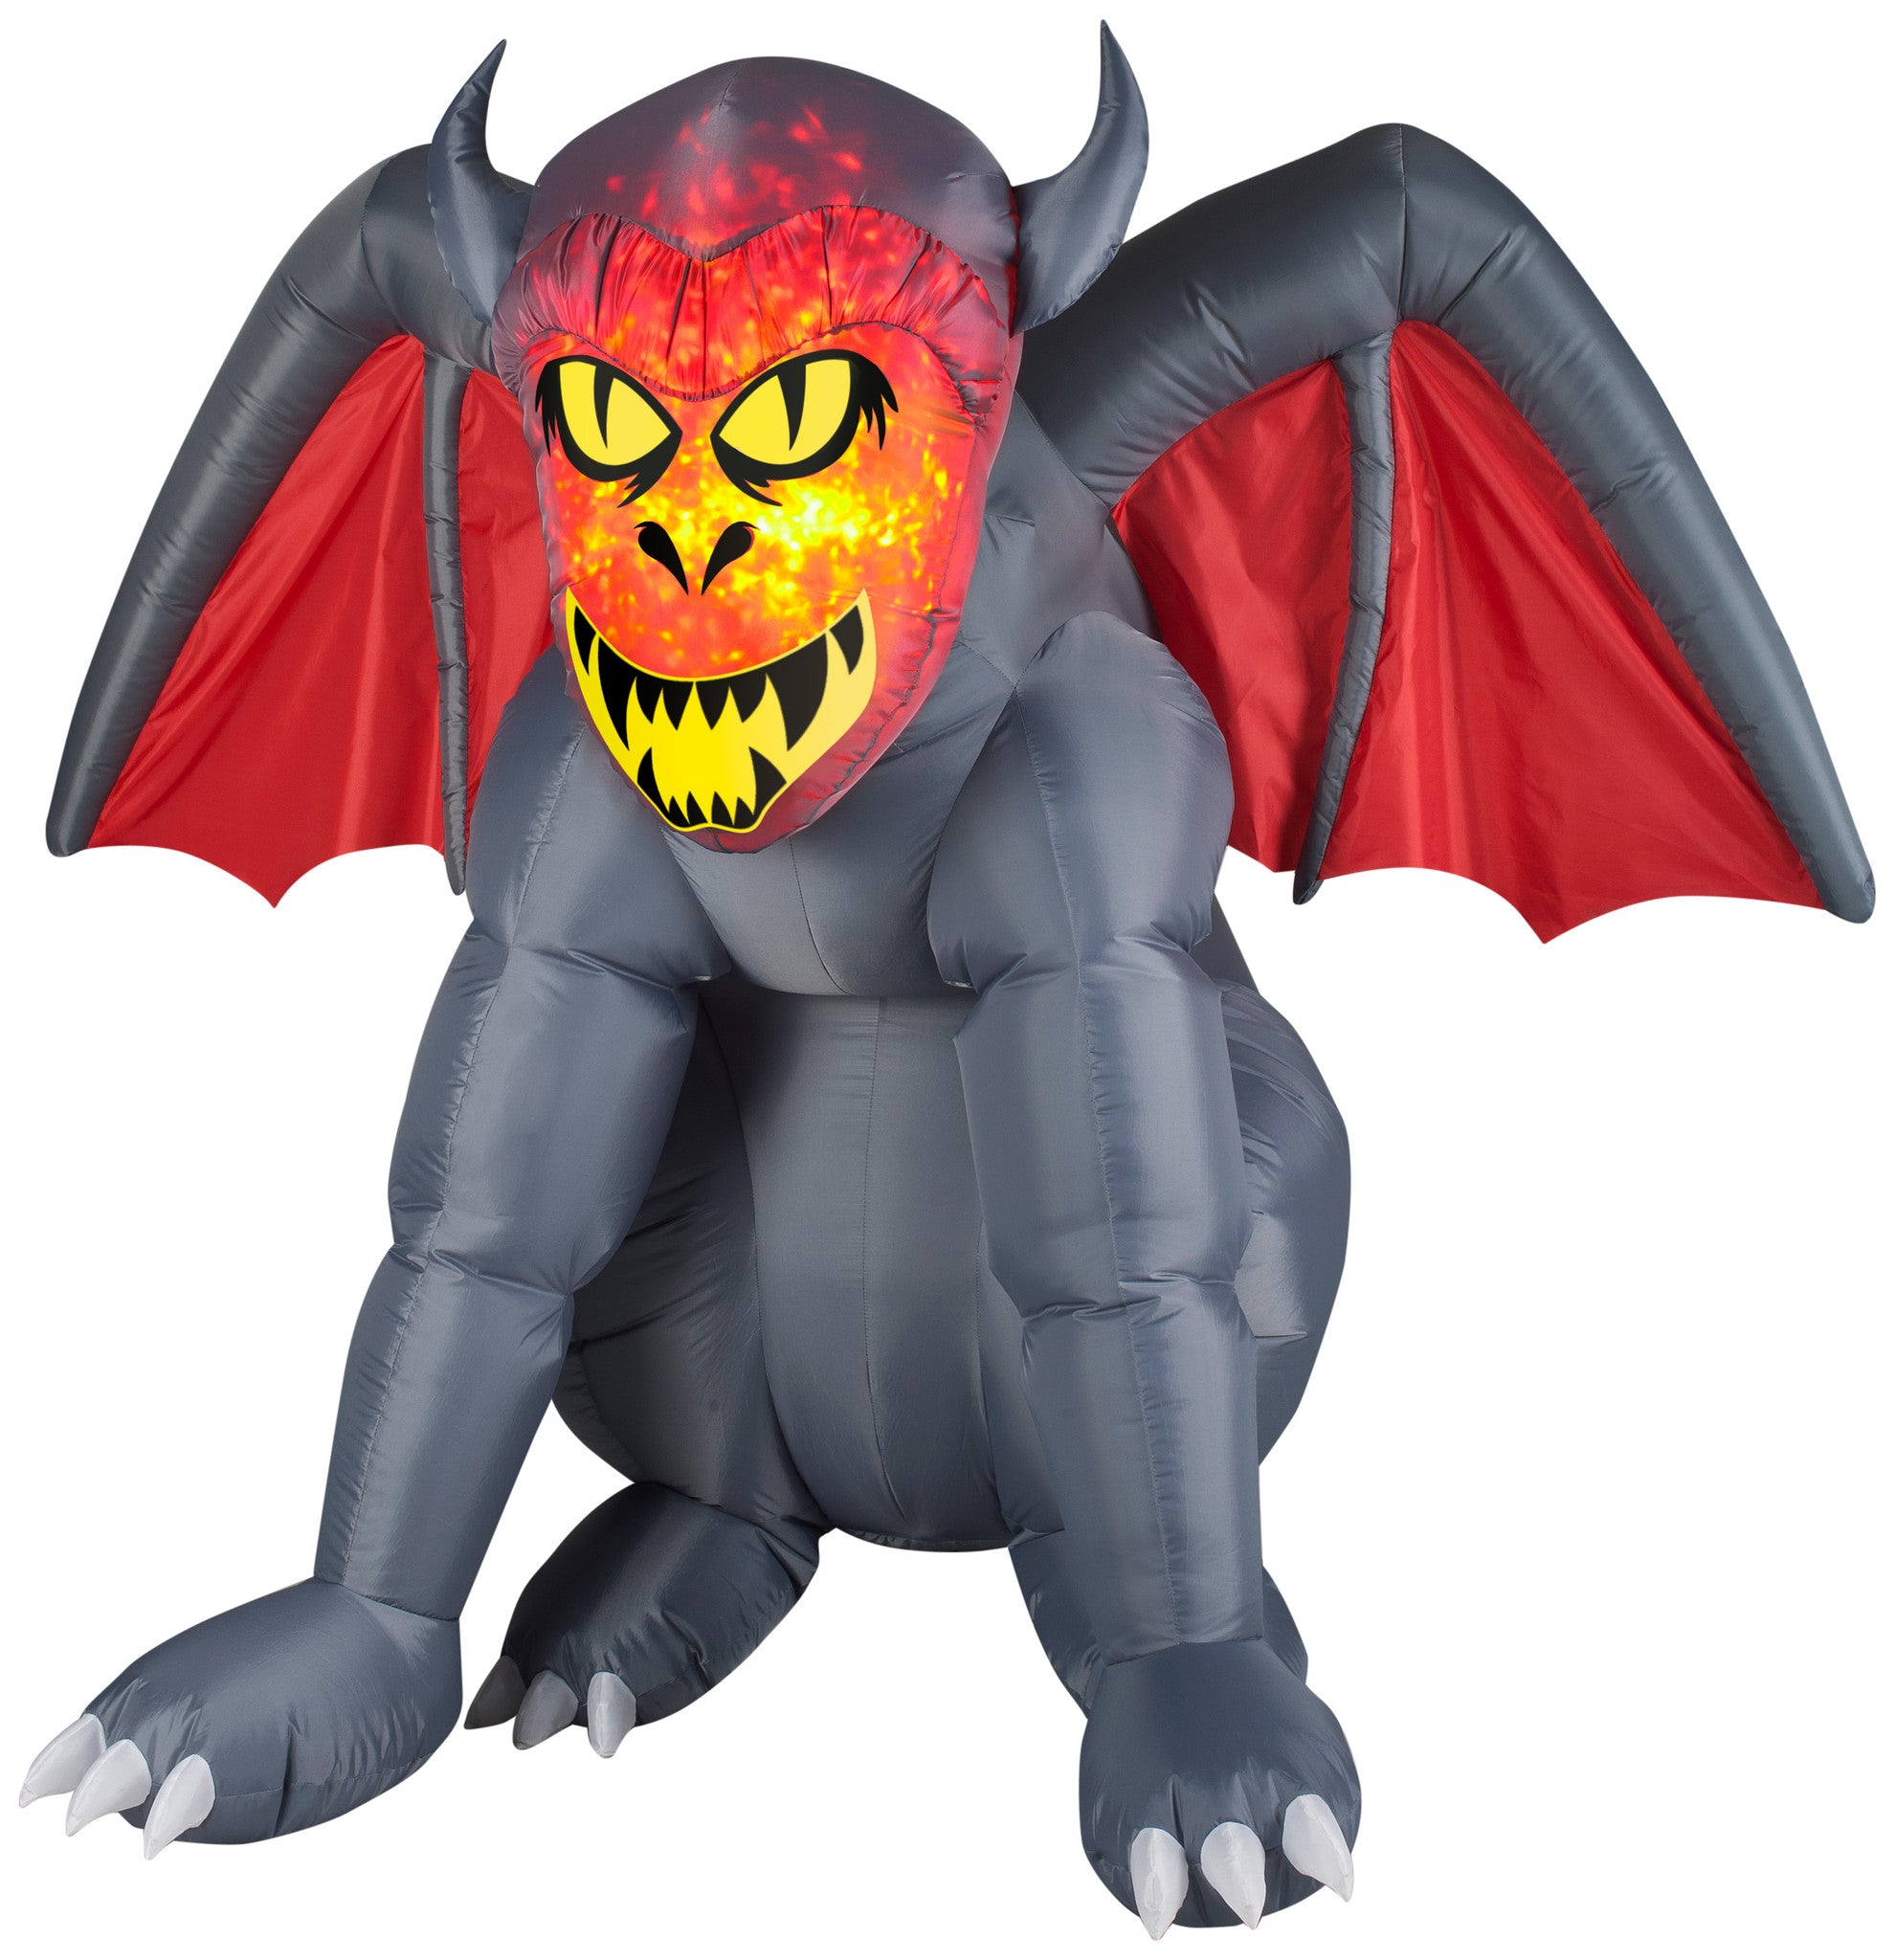 gruesome gargoyle halloween inflatable